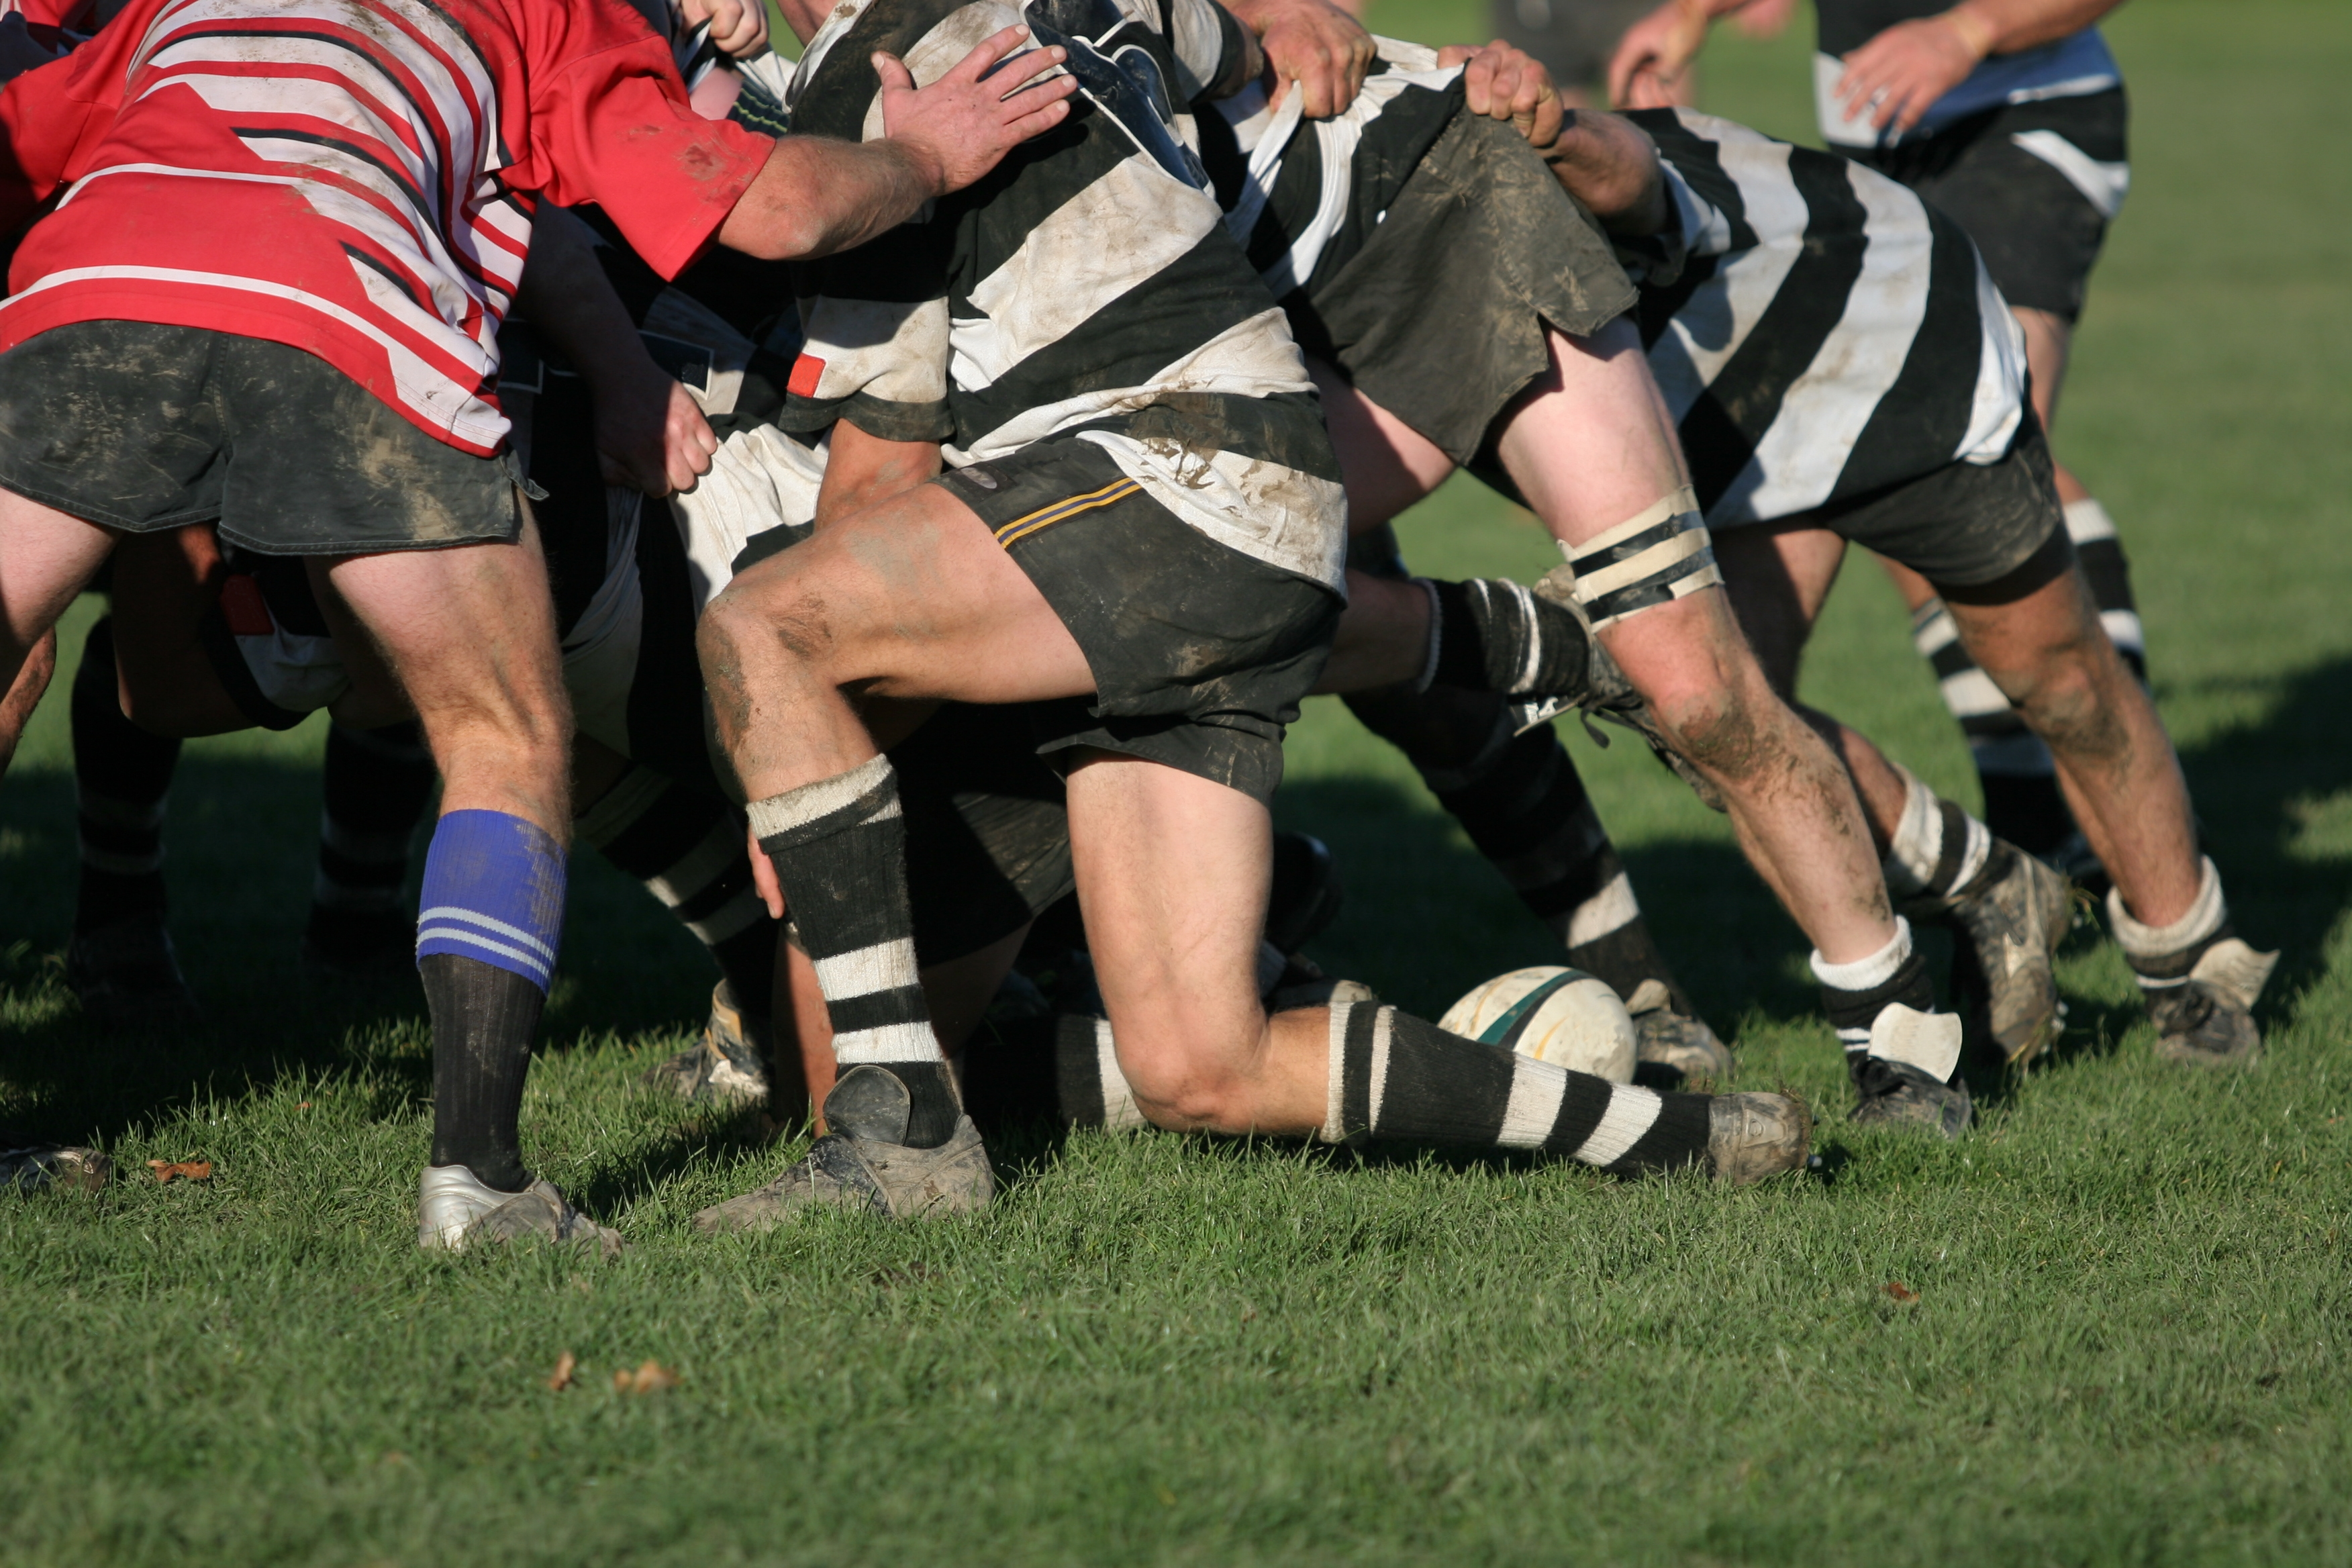 Rugby Players Found to Have 'Concerning' Damage to Their Brains in Study